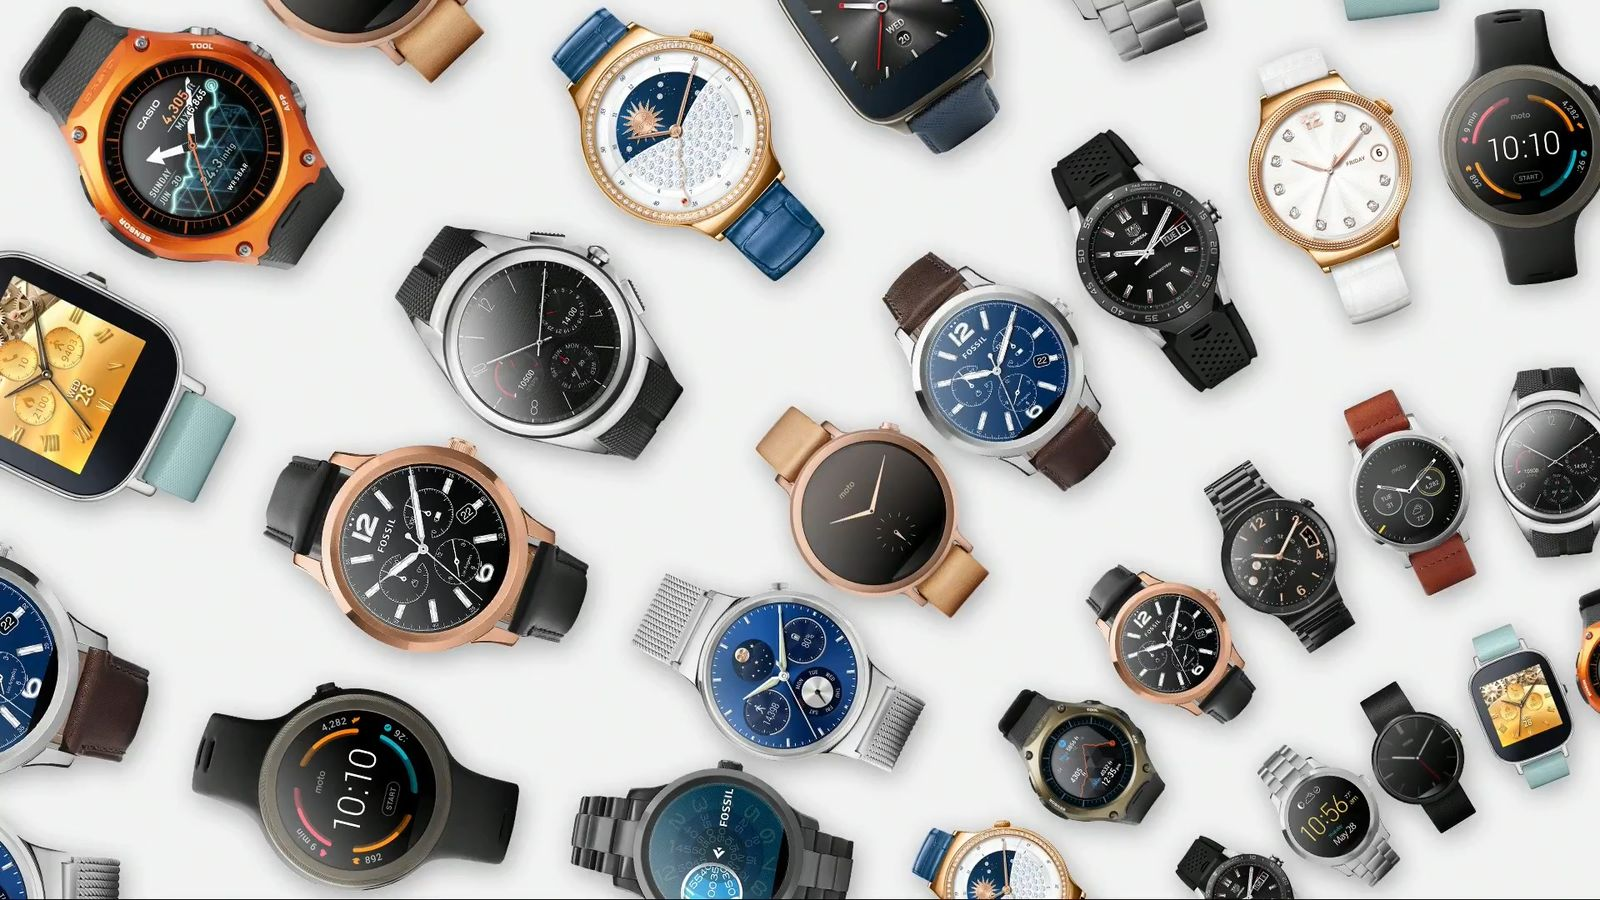 Google plus android wear watches